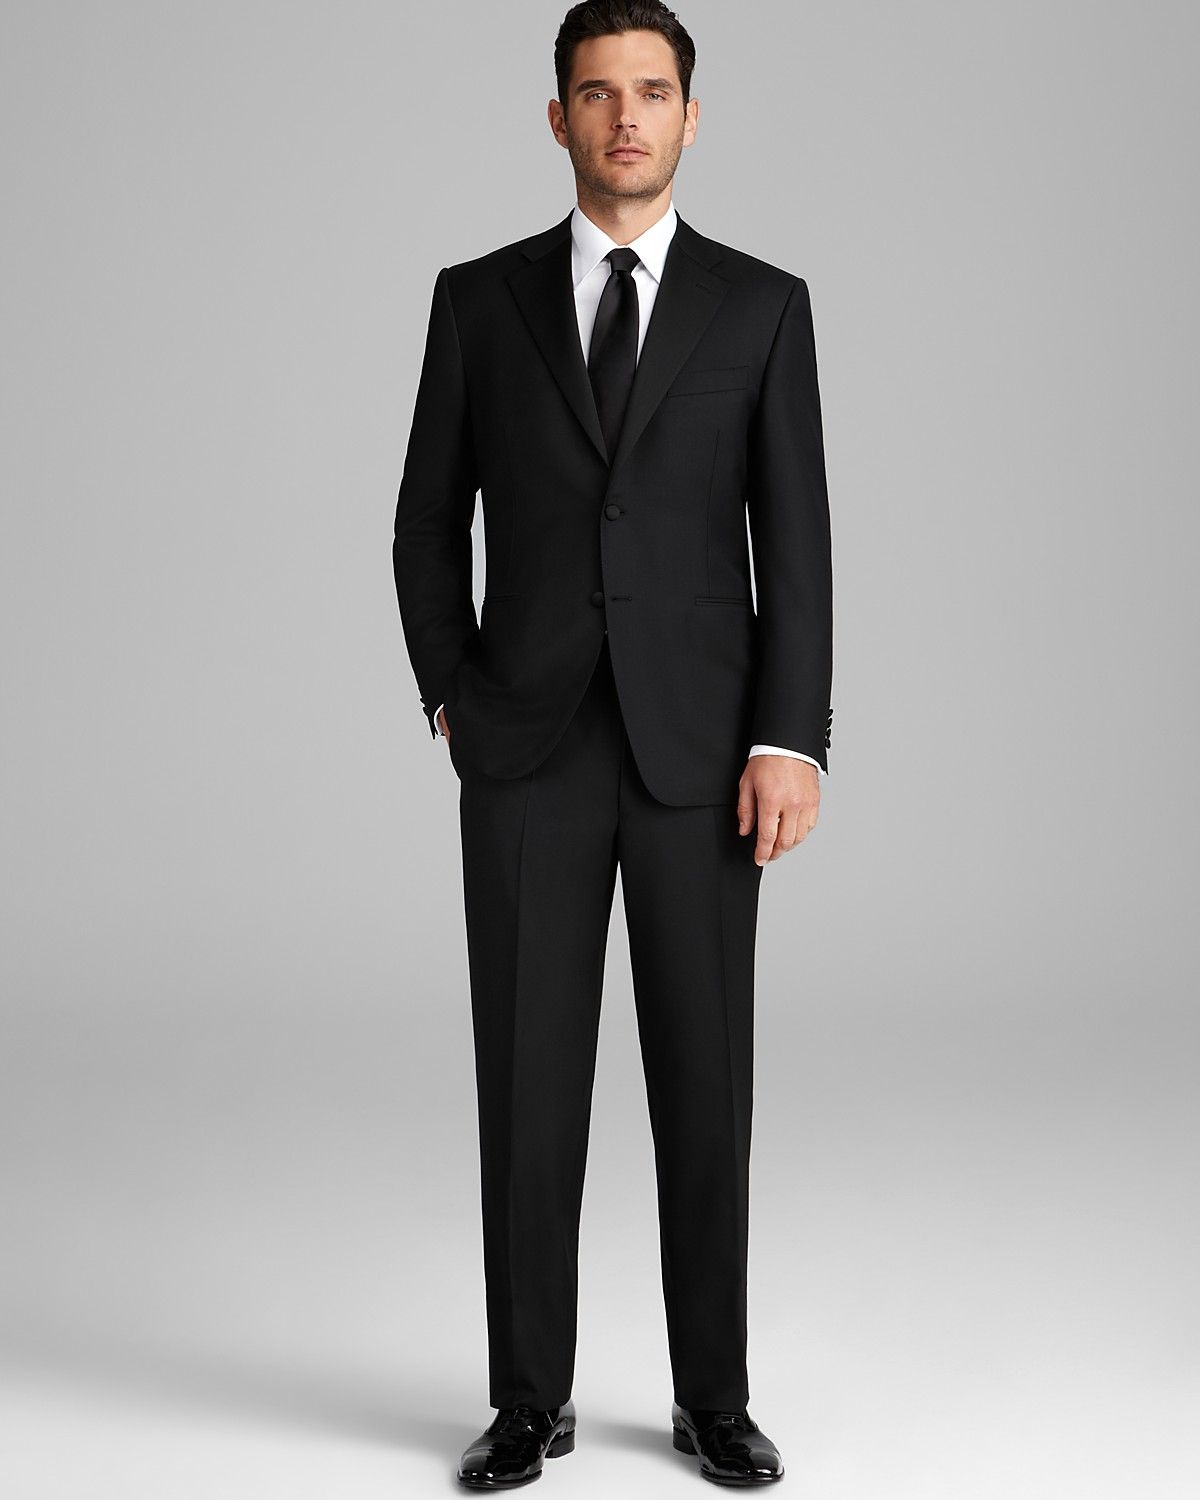 Canali tuxedo classic fit bloomingdaleus these guys